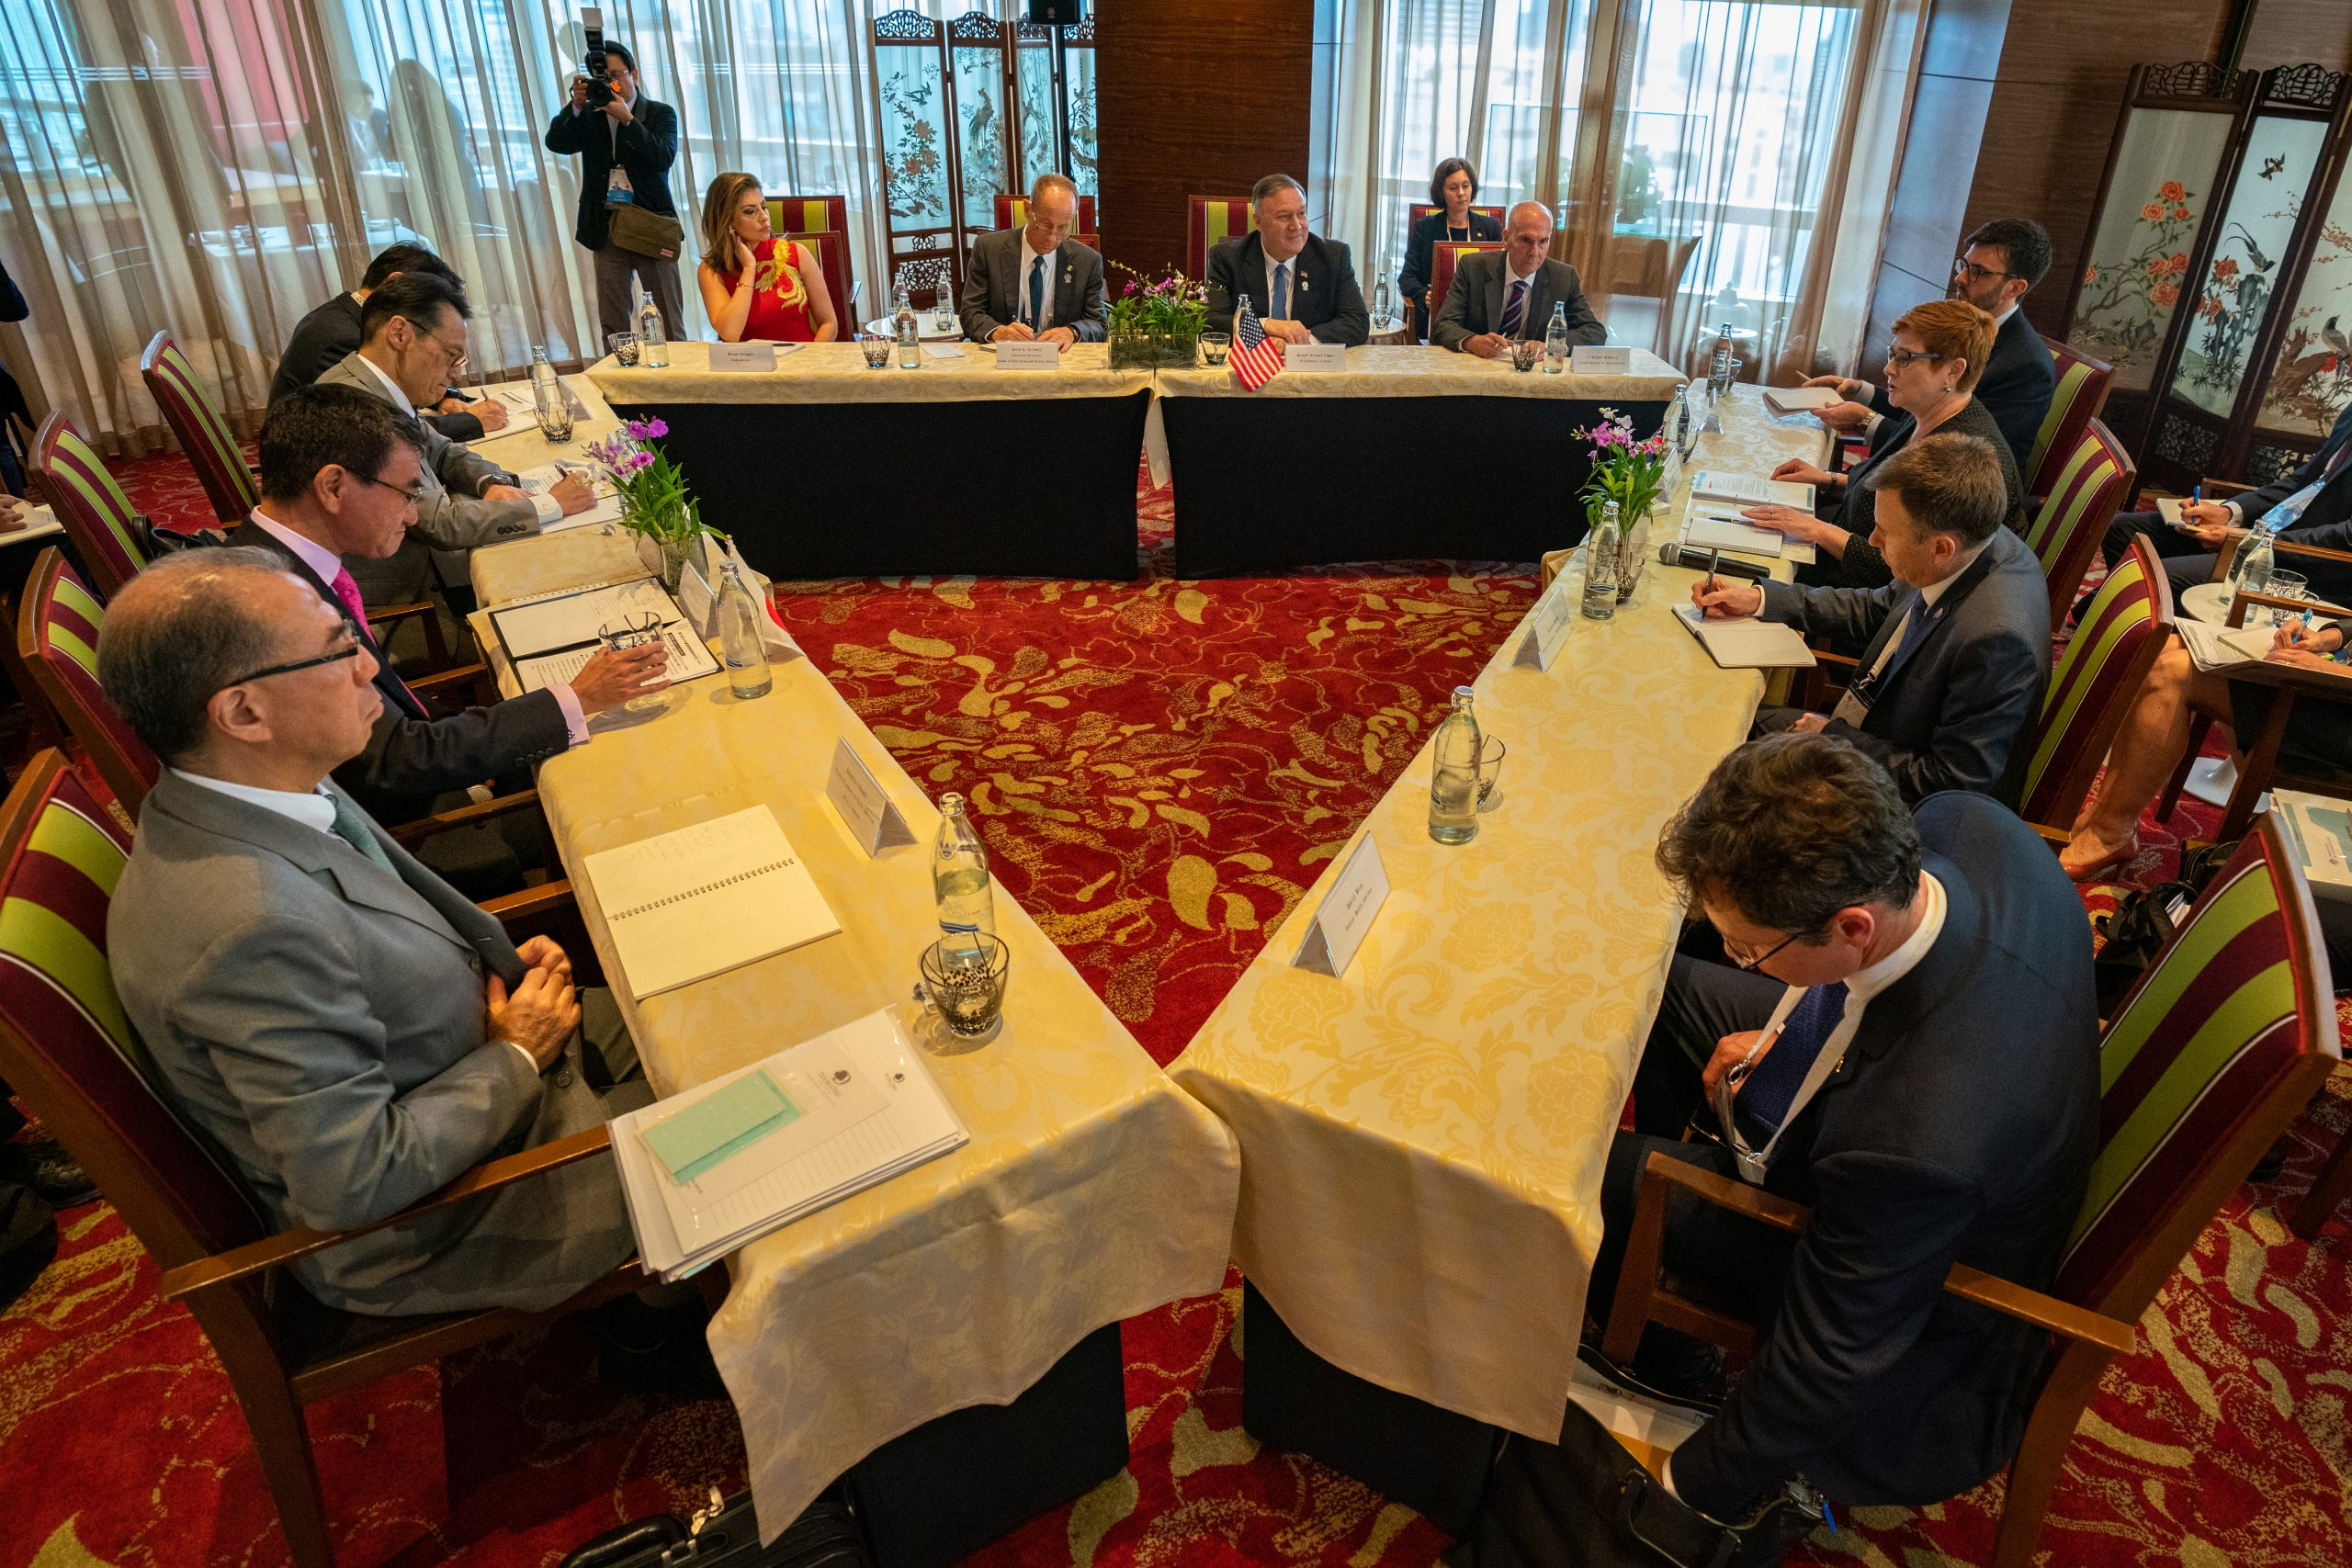 FILE PHOTO: Representatives from Japan (left), the United States (center), and Australia (right) participate in Quadrilateral Security Dialogue meeting in  Bangkok, Thailand in August 2019 (State Department photo by Ron Przysucha)